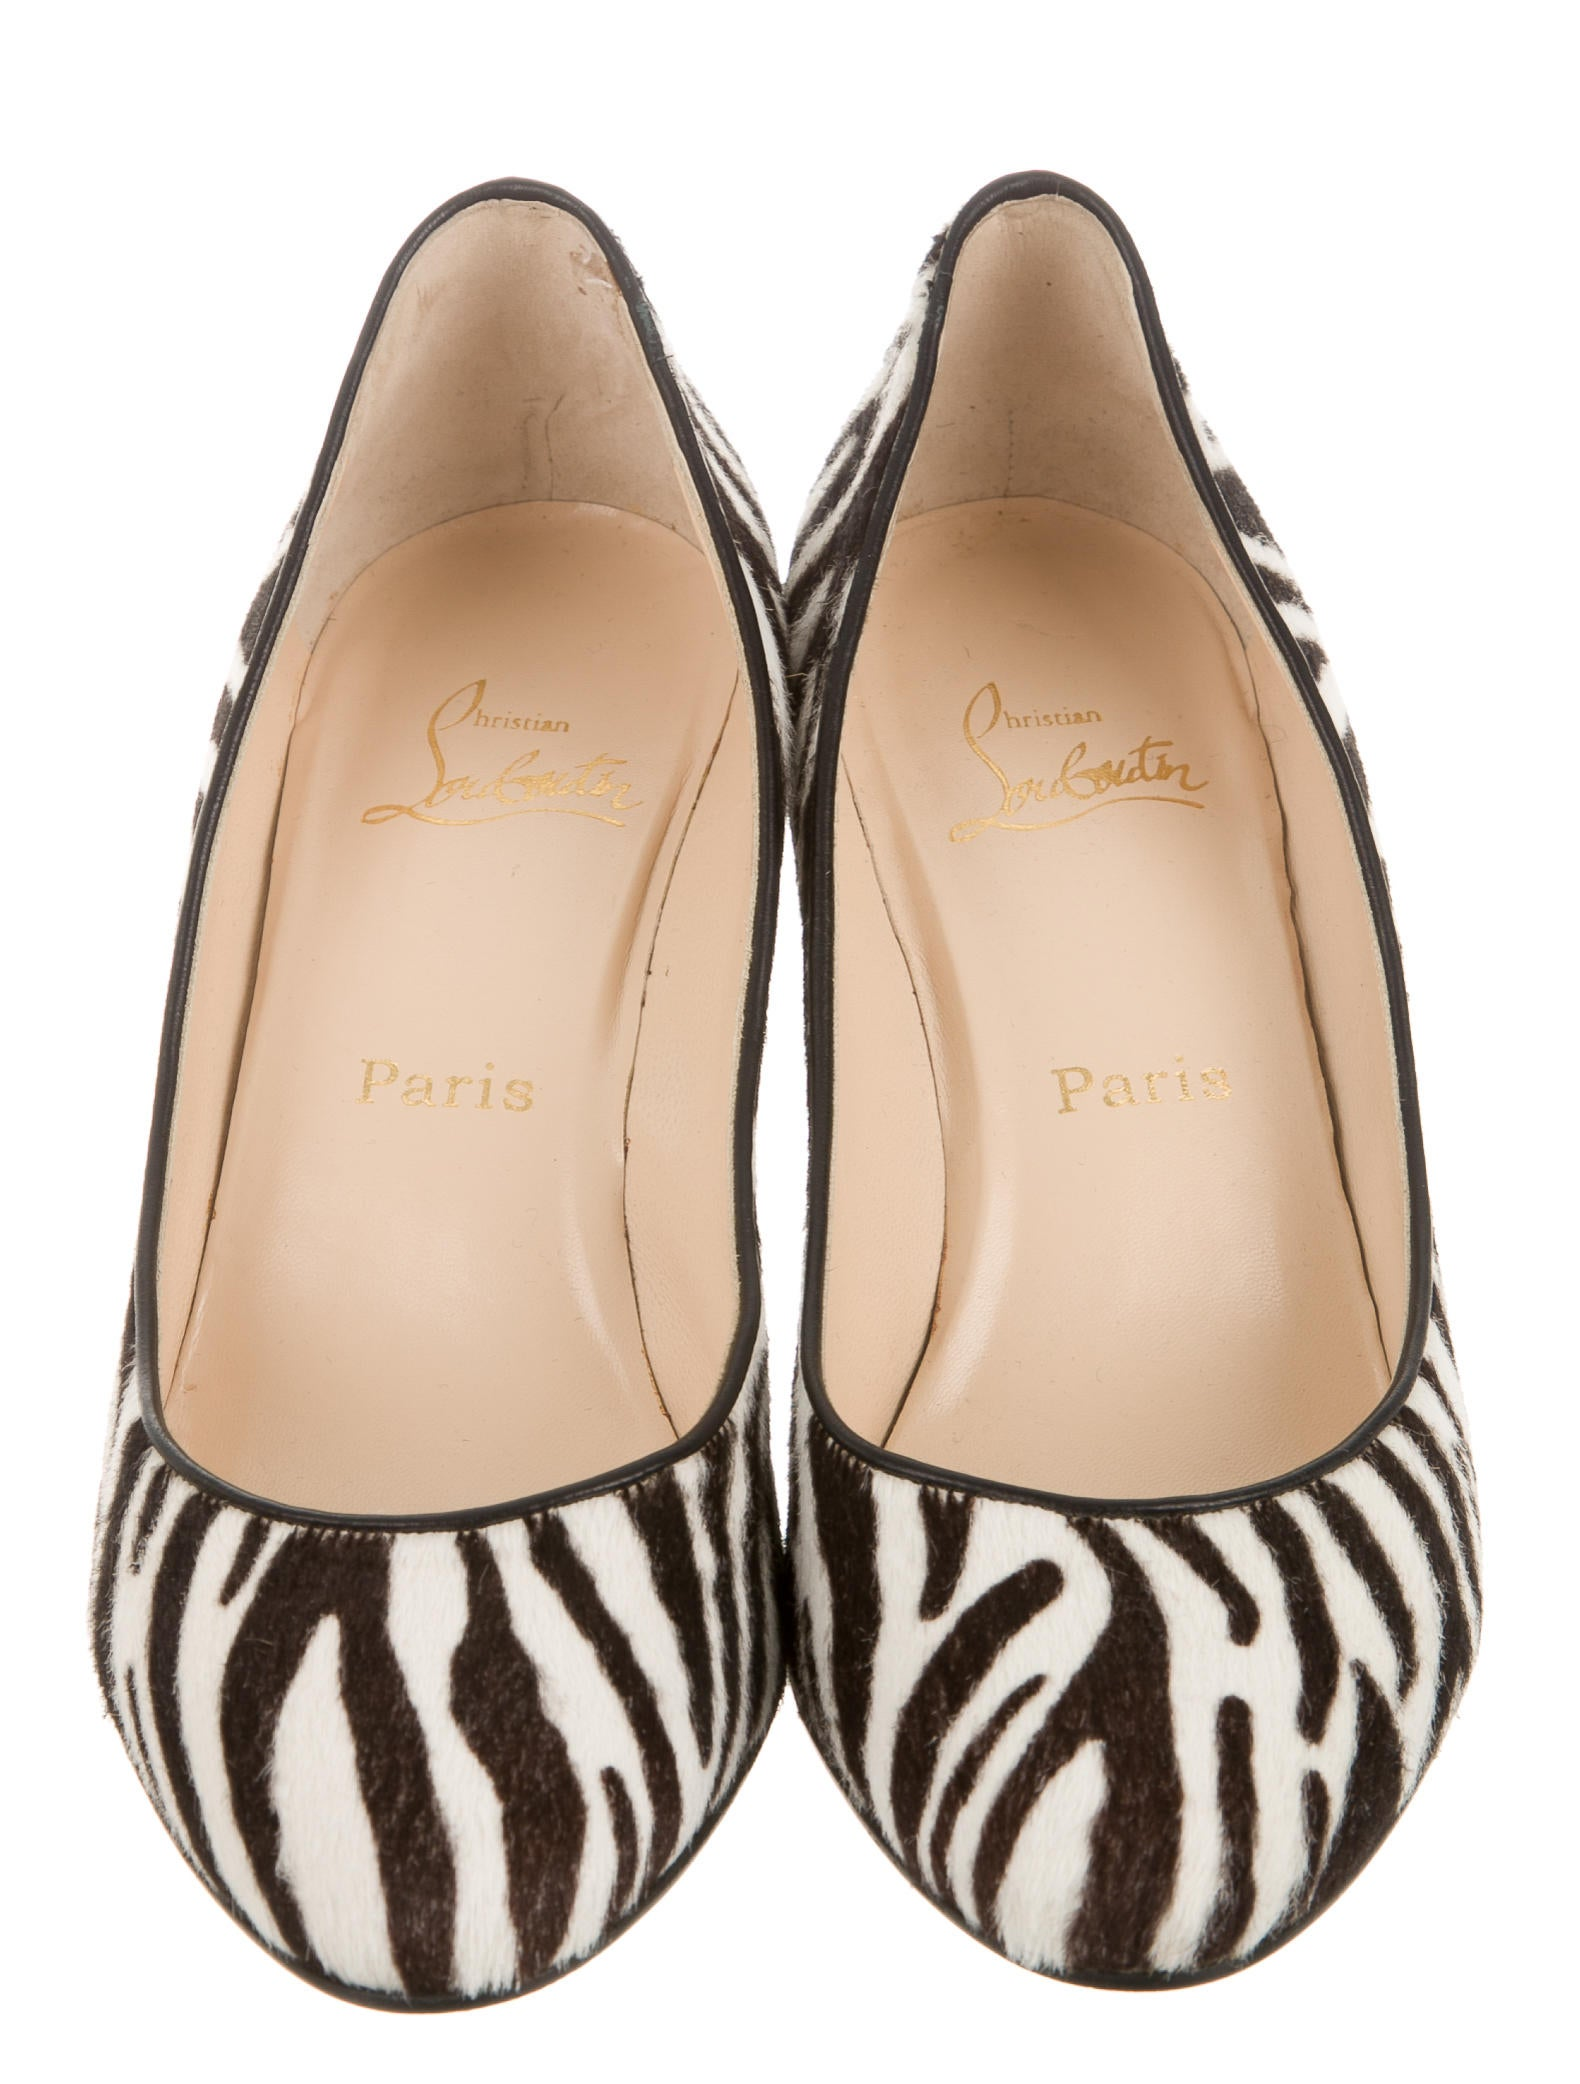 christian louboutin zebra print wedges shoes cht52978 the realreal